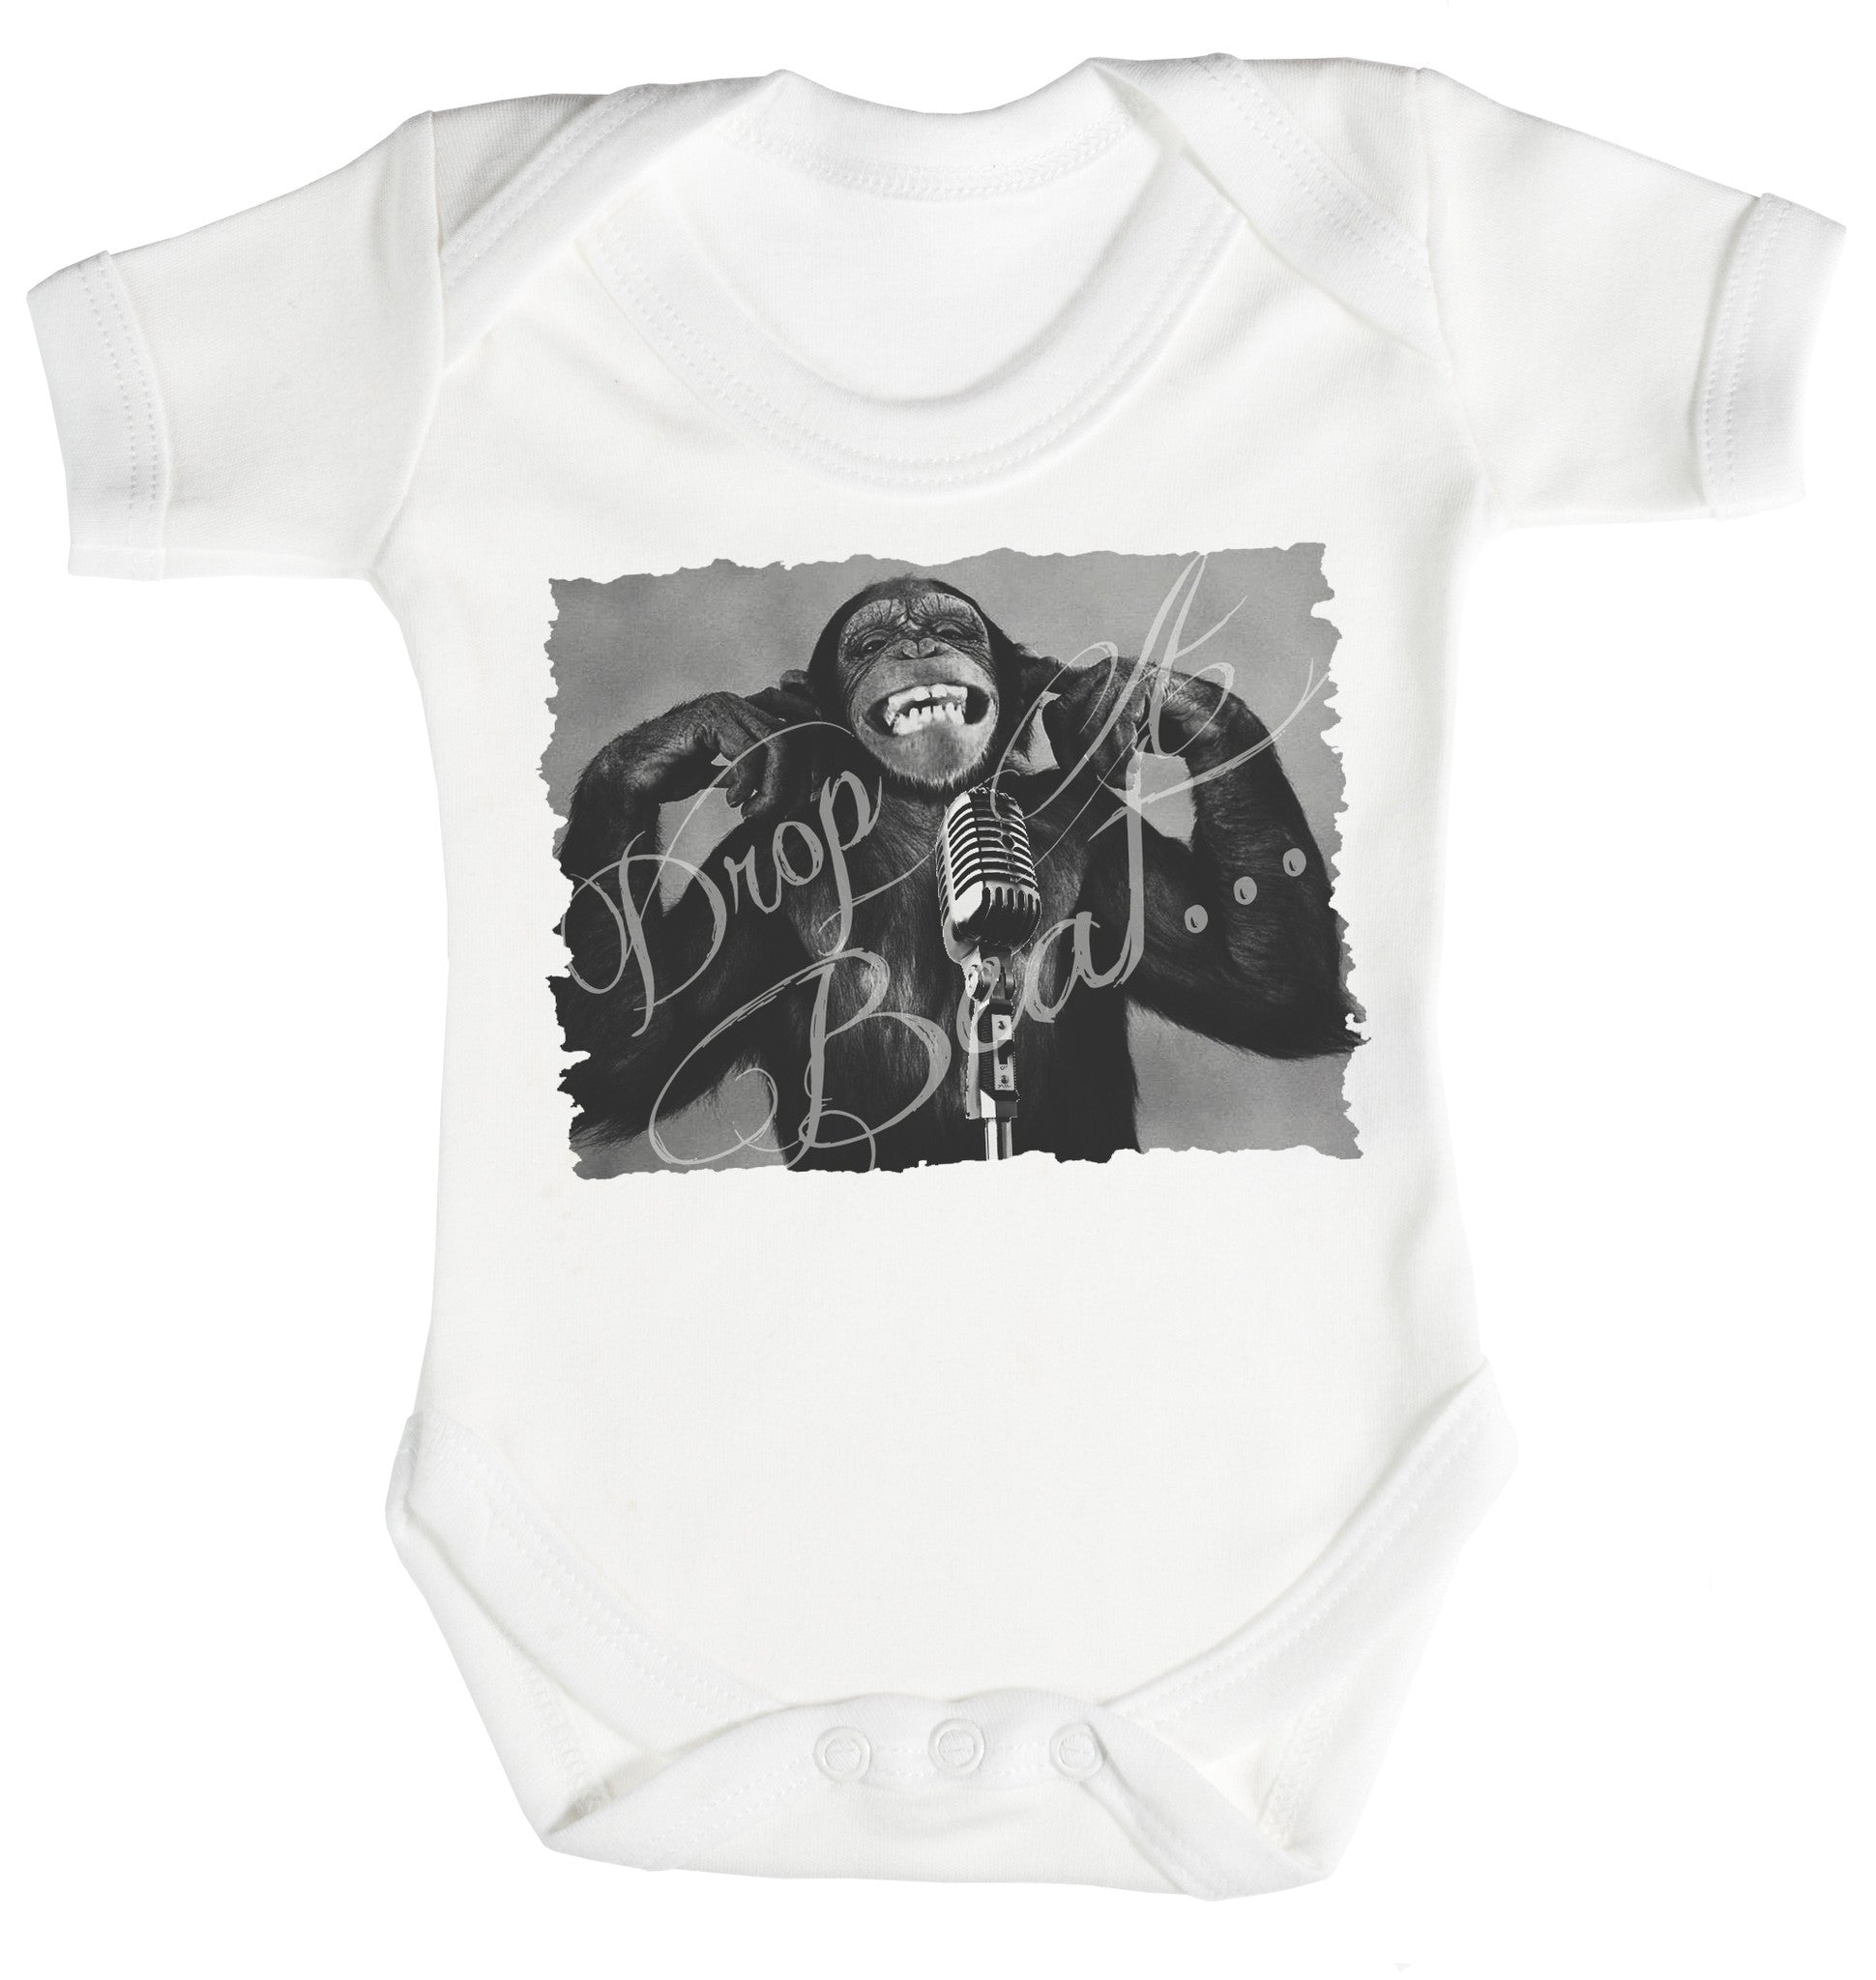 Drop A Beat Baby Bodysuit / Babygrow